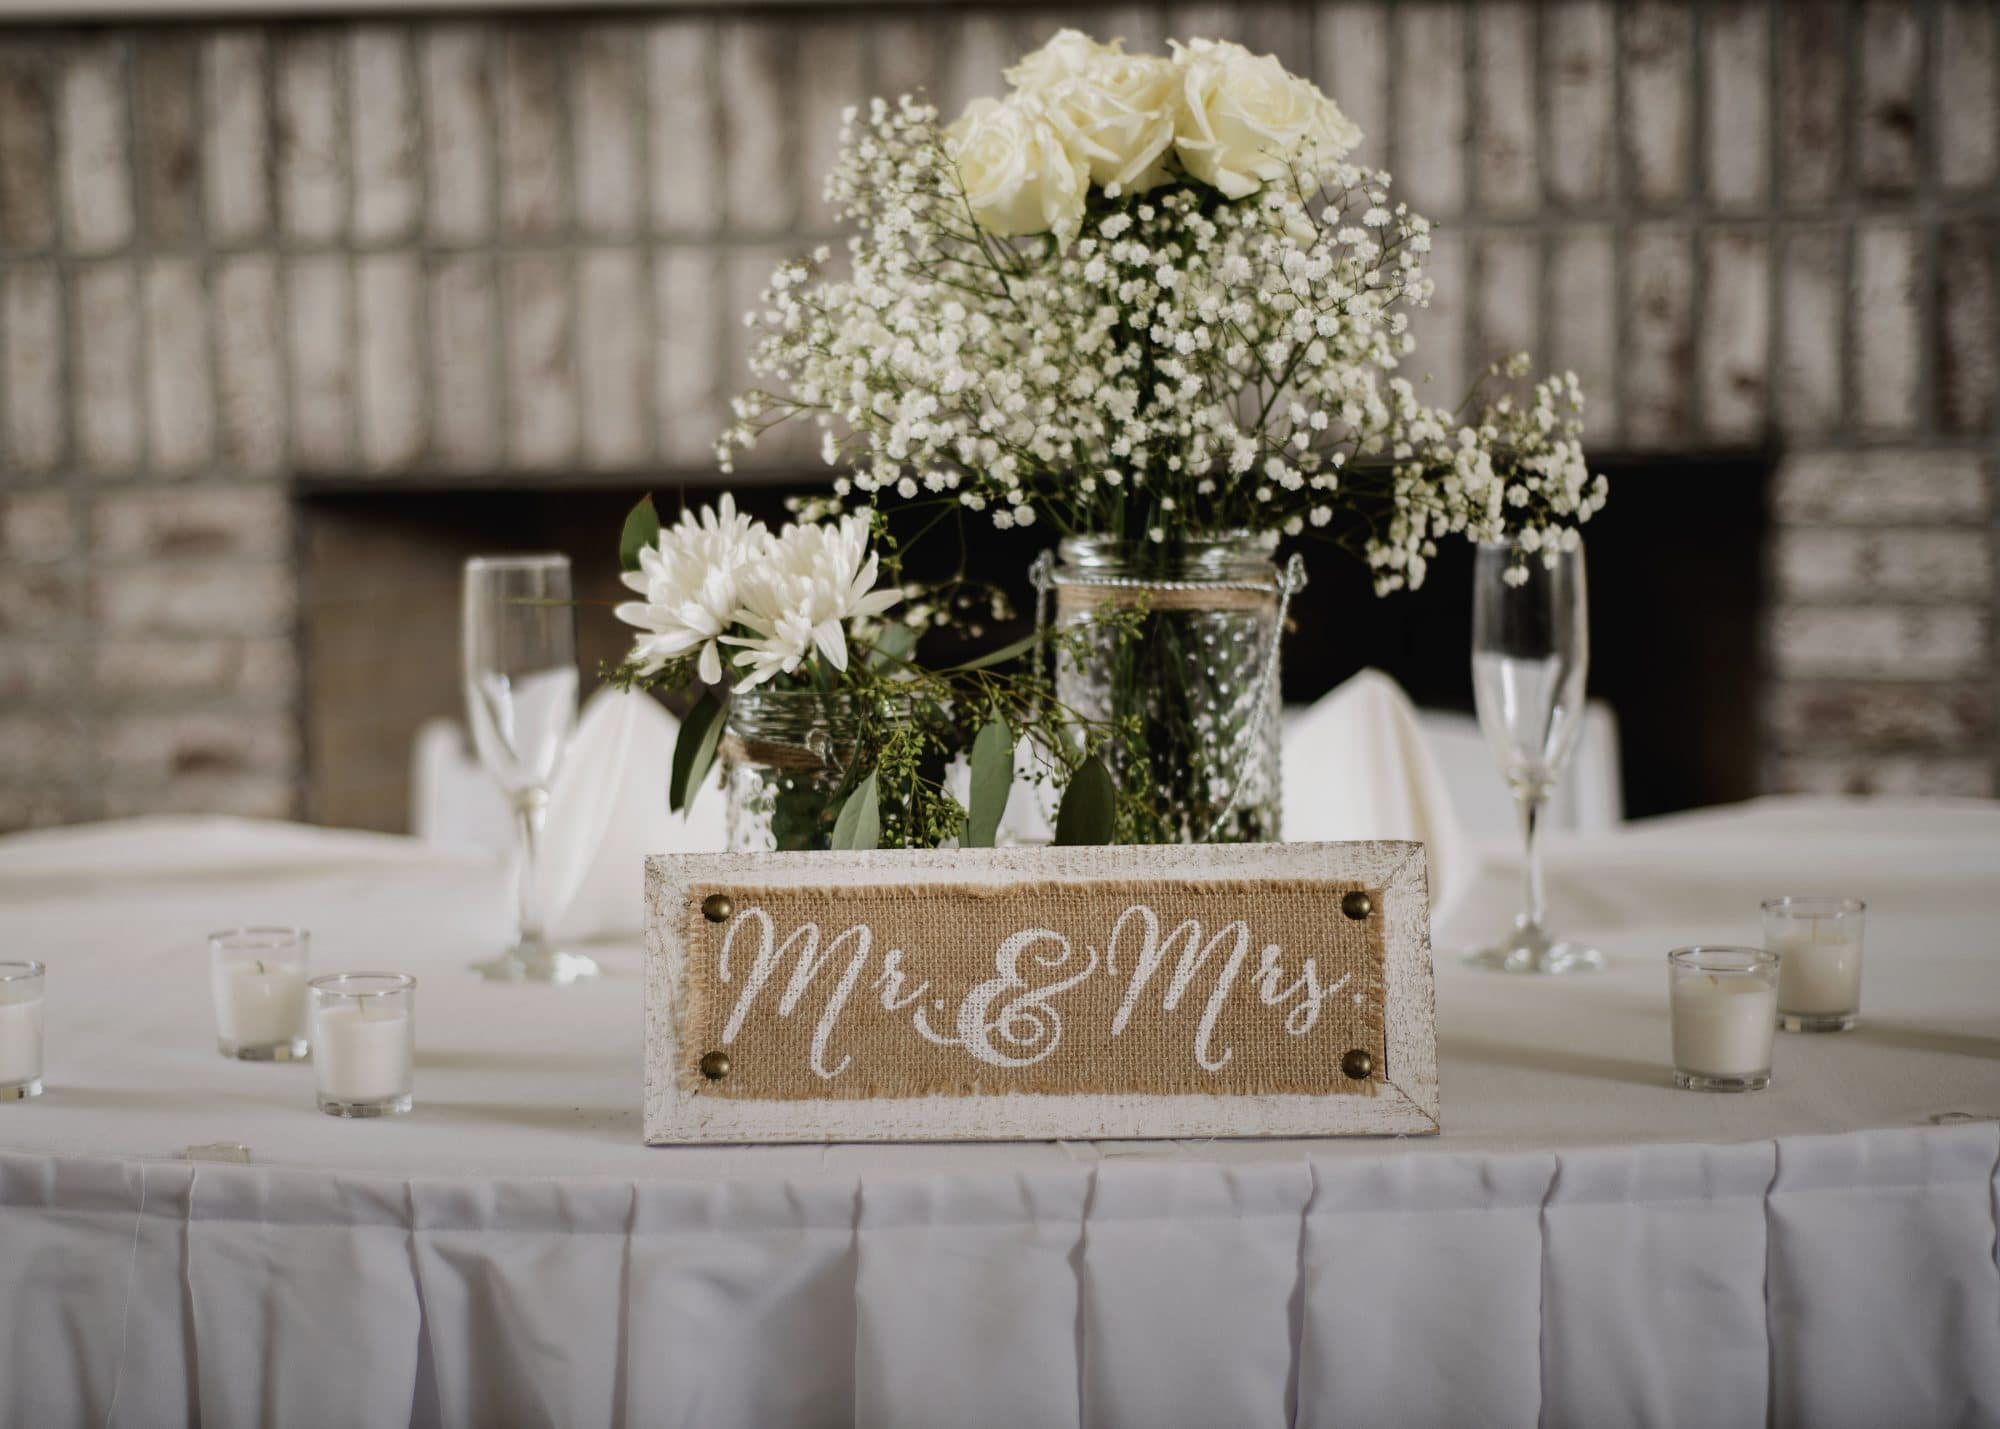 Celebration Golf Club - Mr. & Mrs. sign on sweetheart table